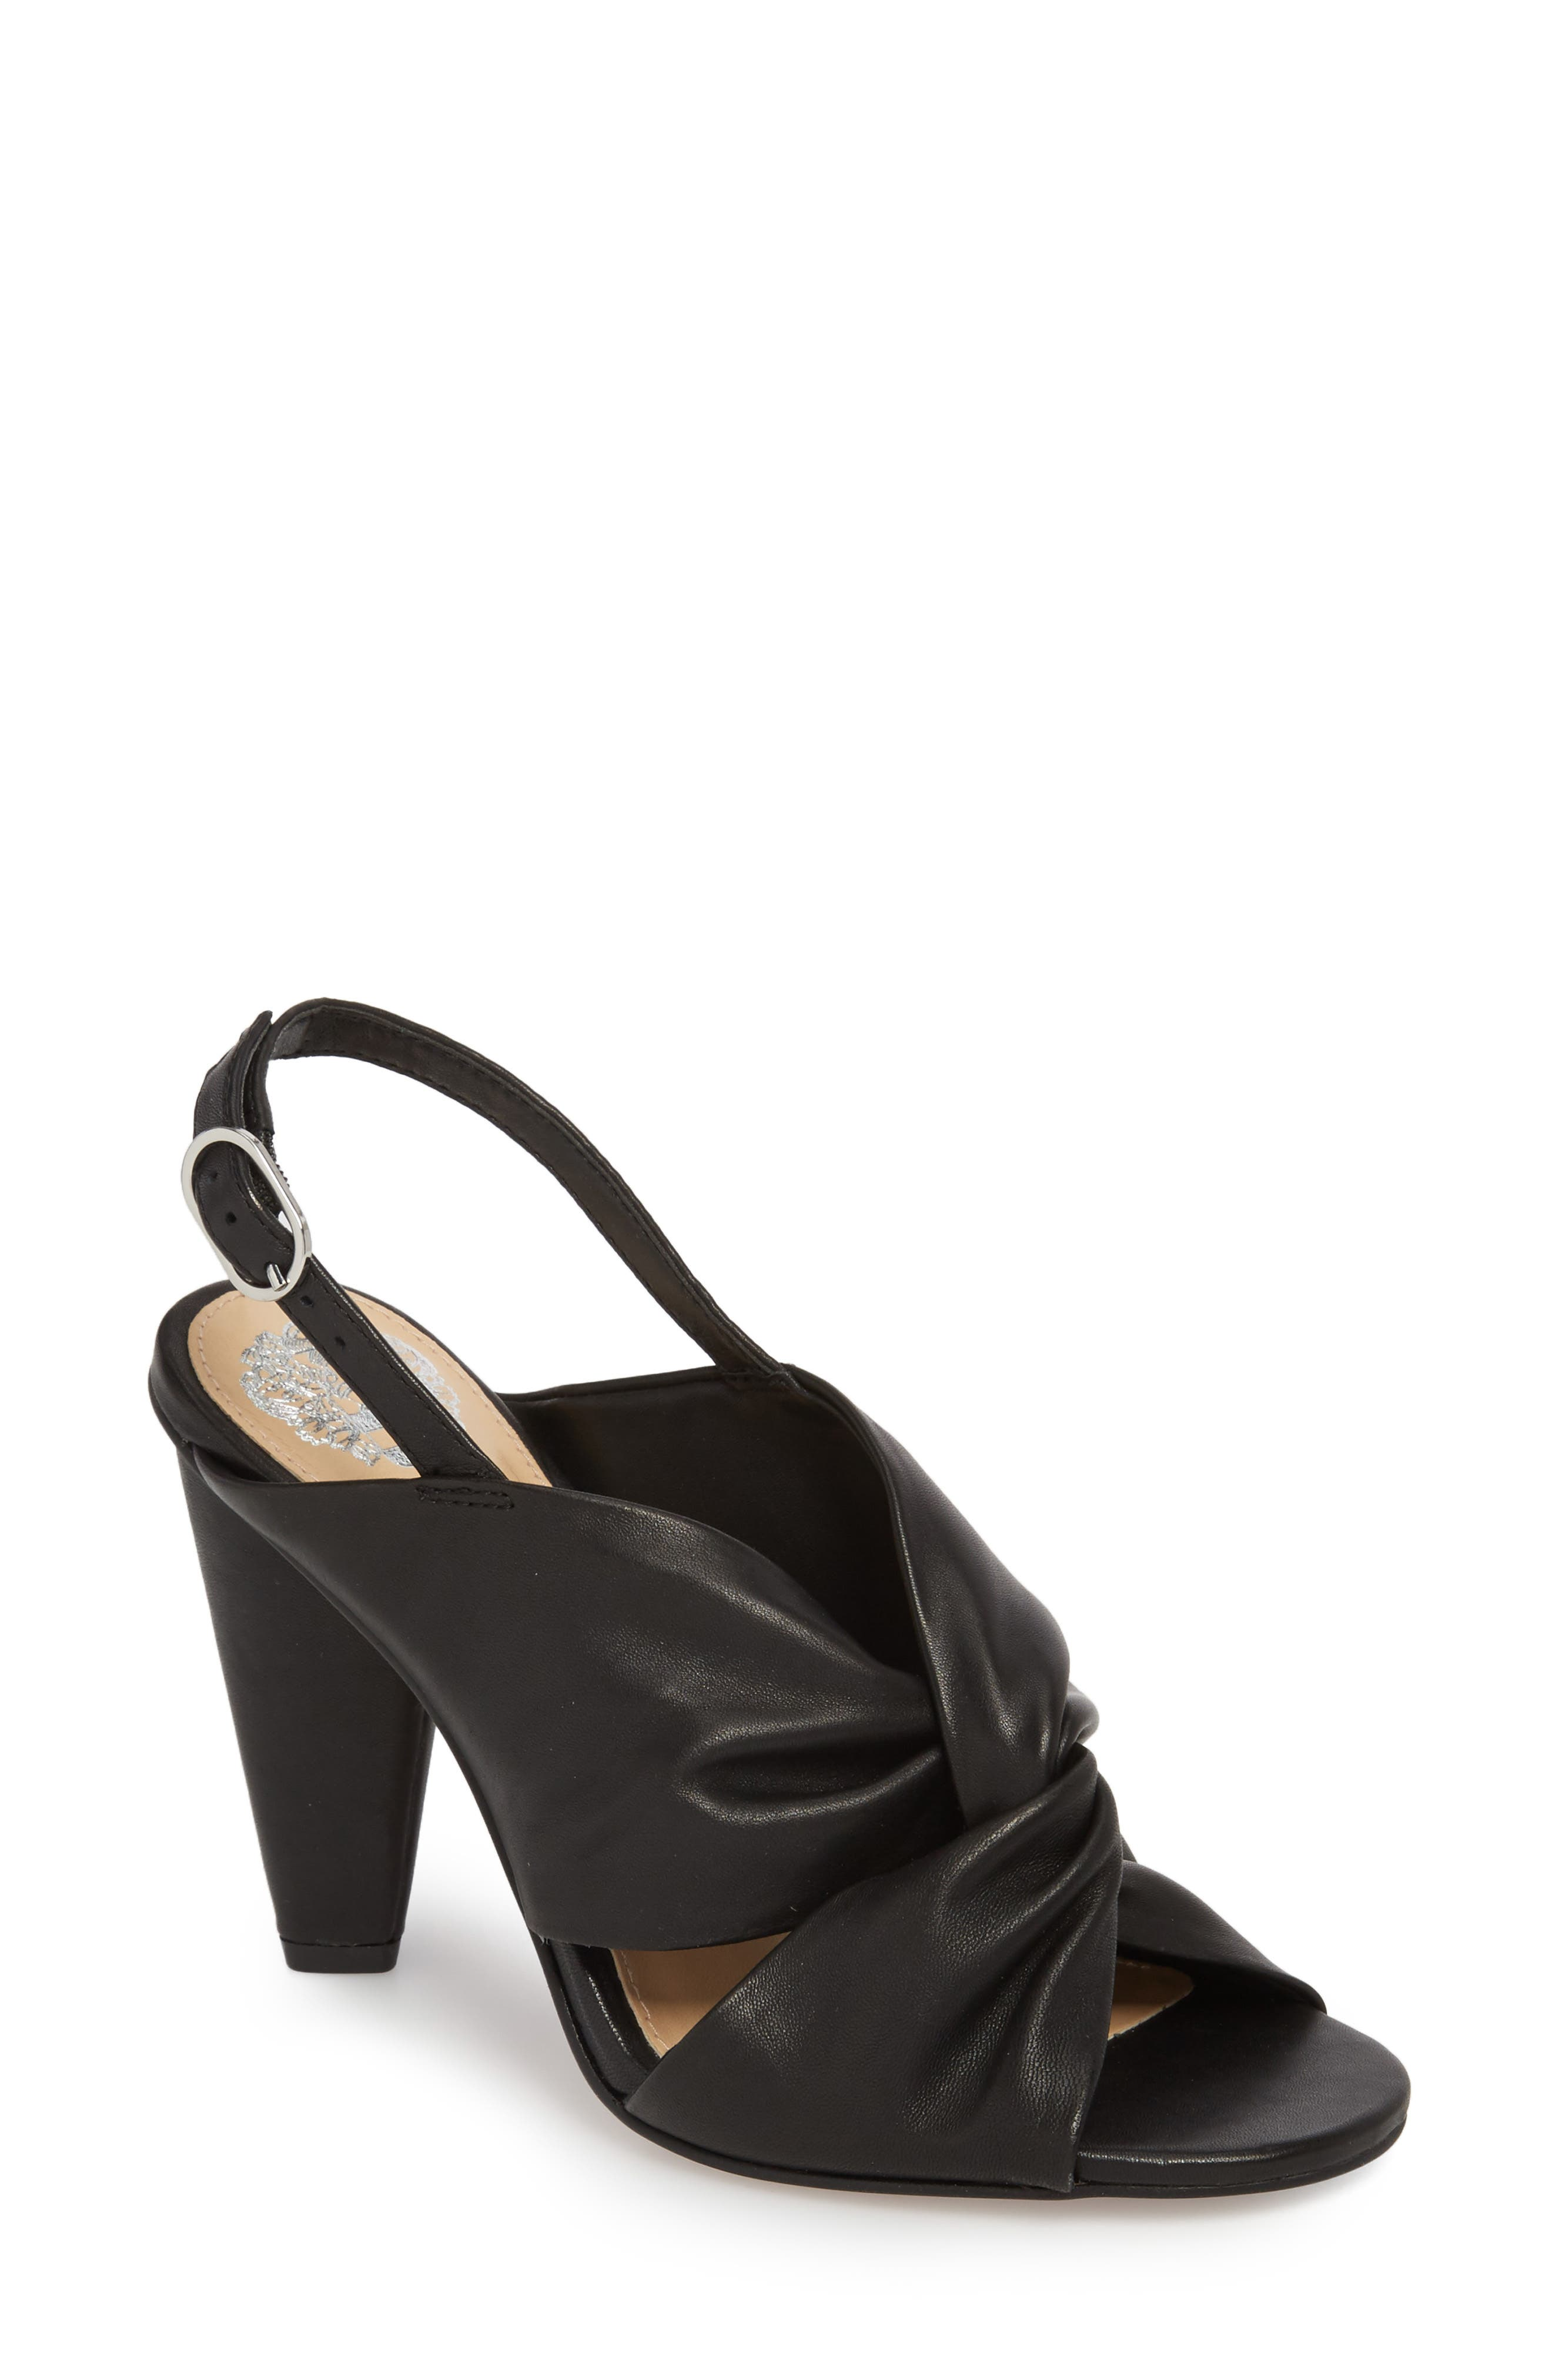 Kattie Slingback Sandal,                             Main thumbnail 1, color,                             BLACK LEATHER